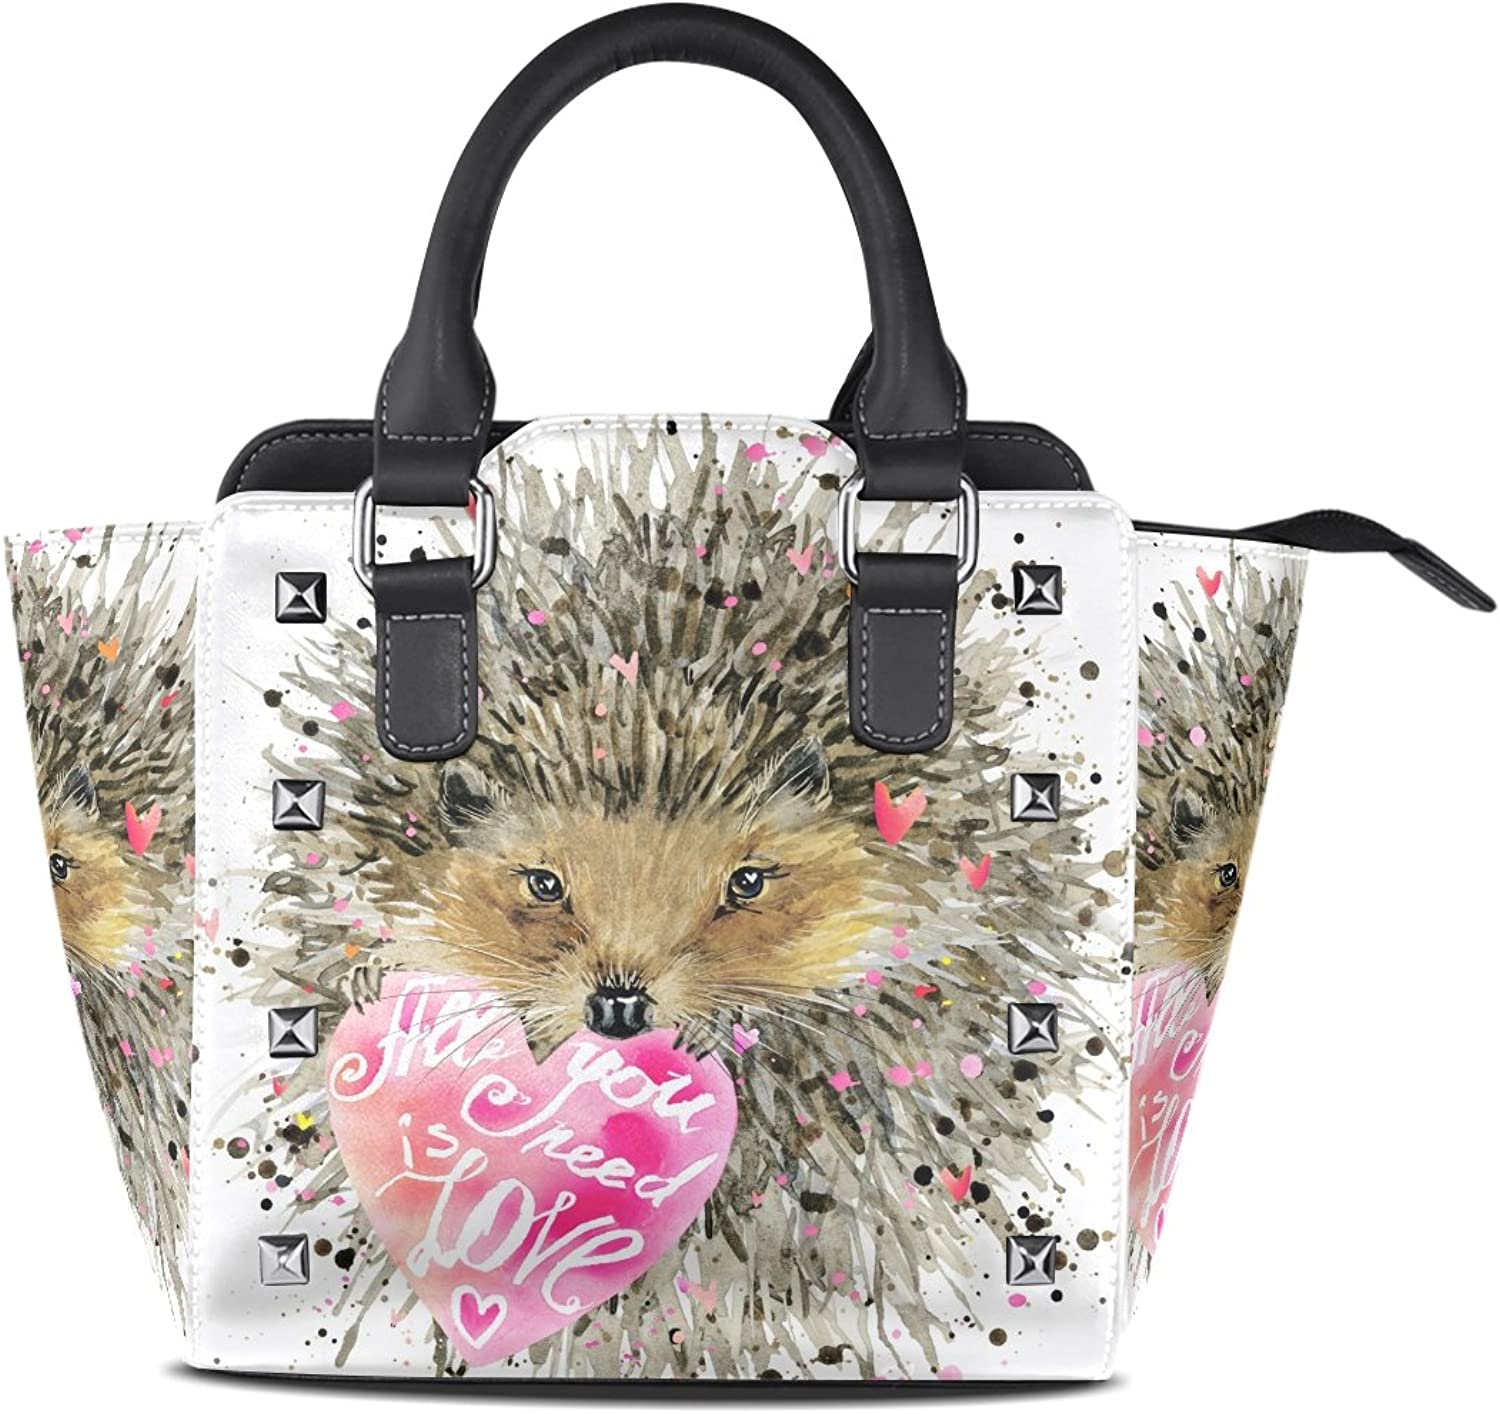 My Little Nest Women's Top Handle Satchel Handbag Watercolor Hedgehog Ladies PU Leather Shoulder Bag Crossbody Bag